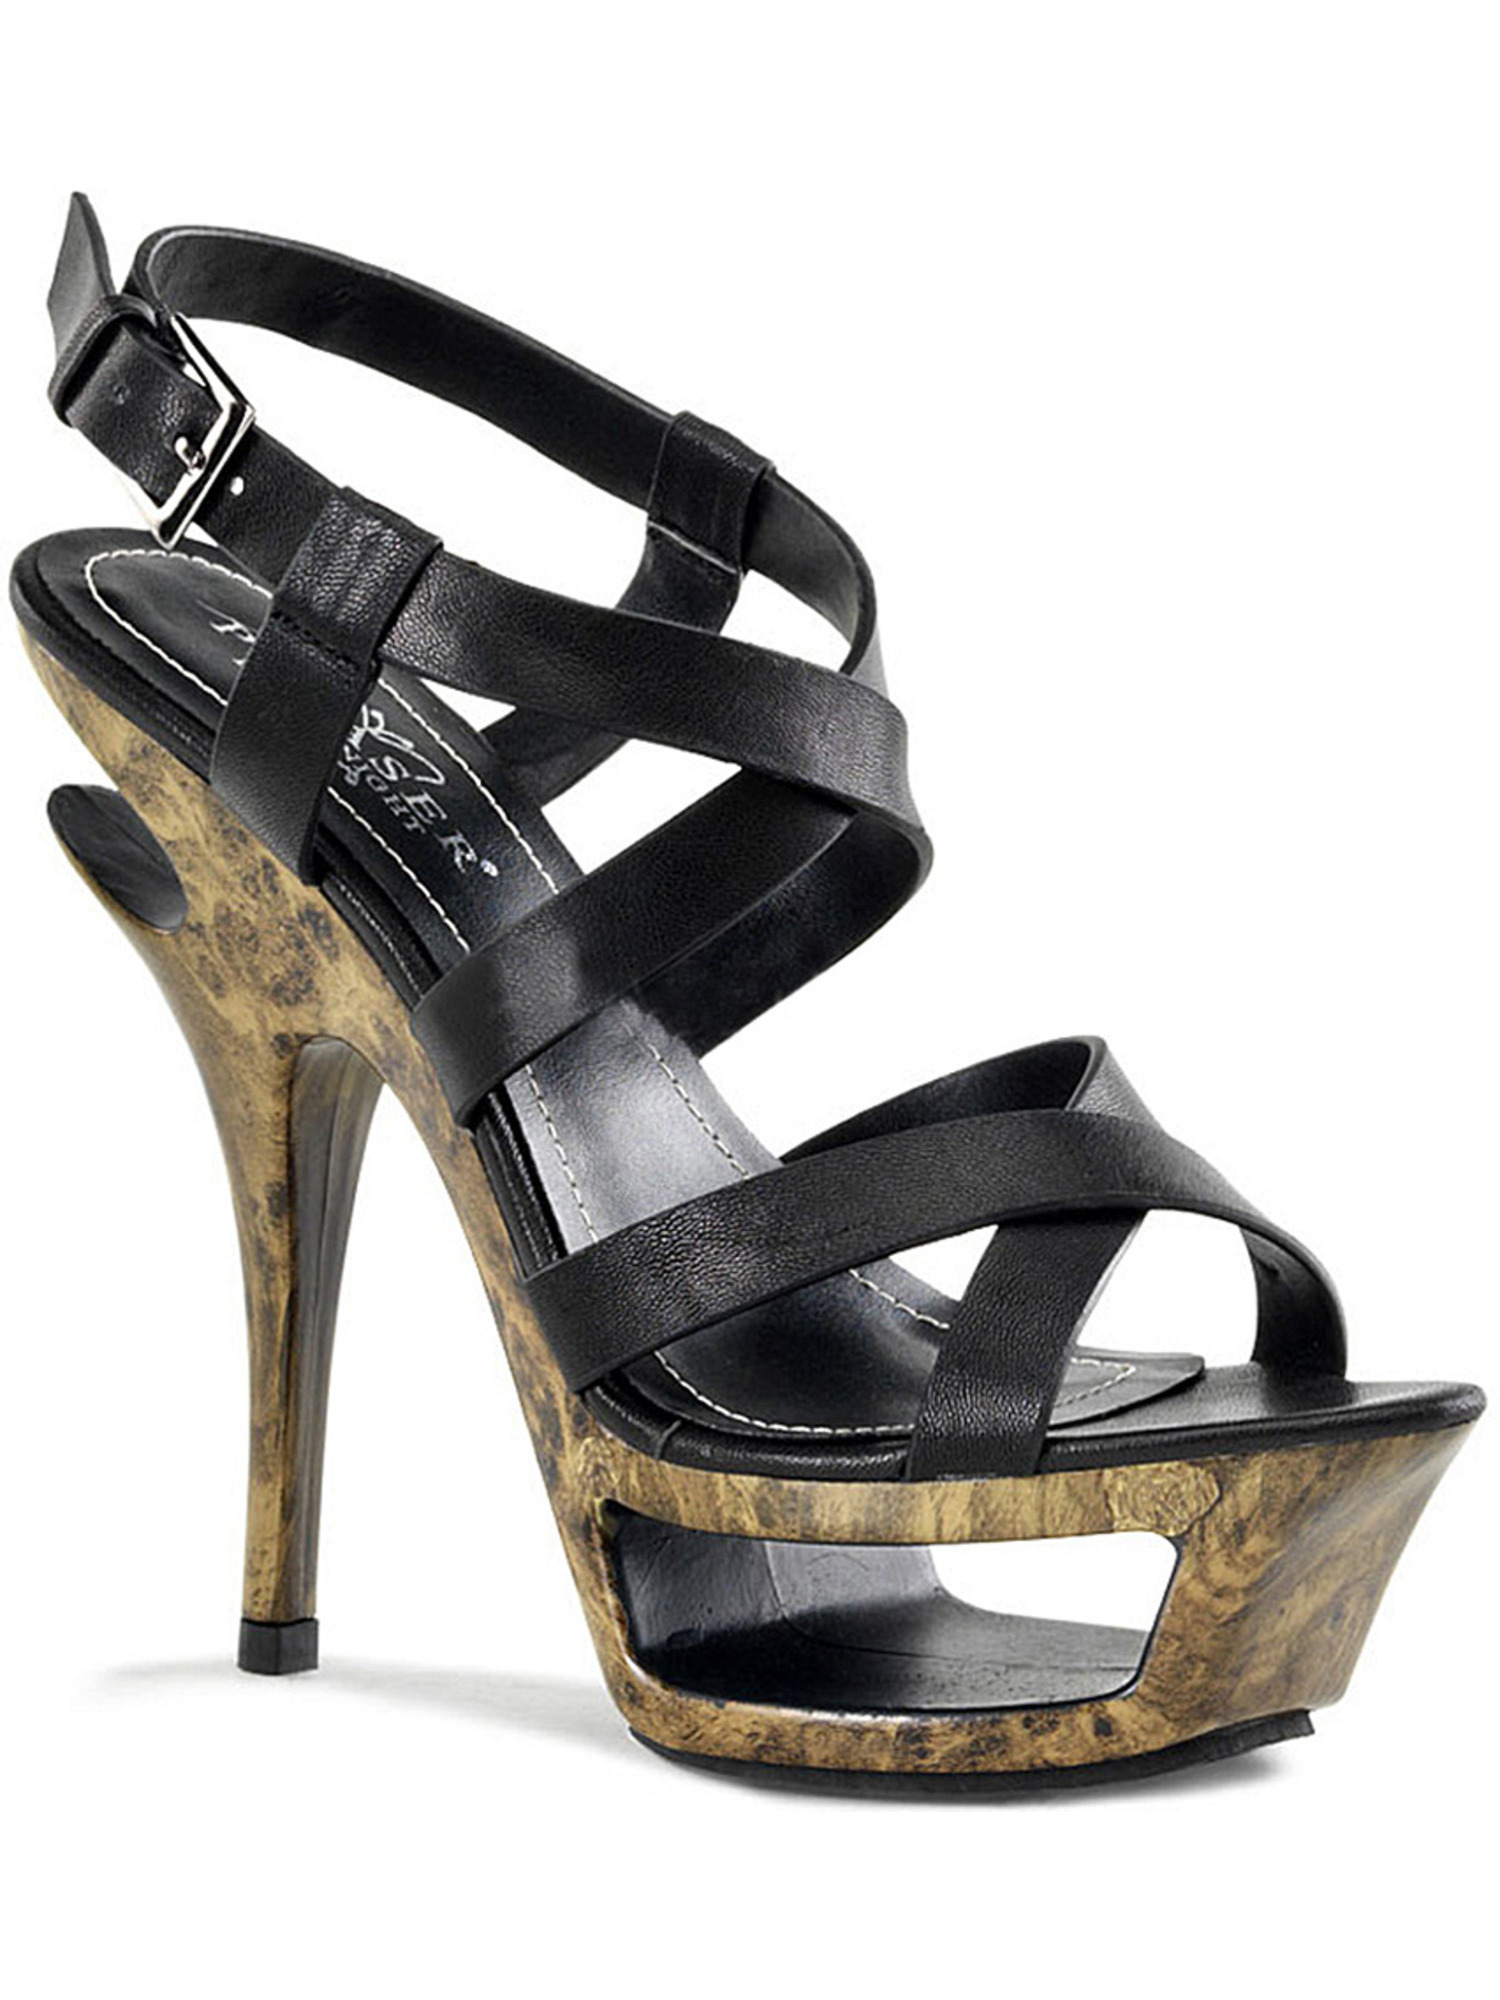 Womens Black Leather Sandals Marble Print Faux Wood Platform 5 1/2 Inch Heels